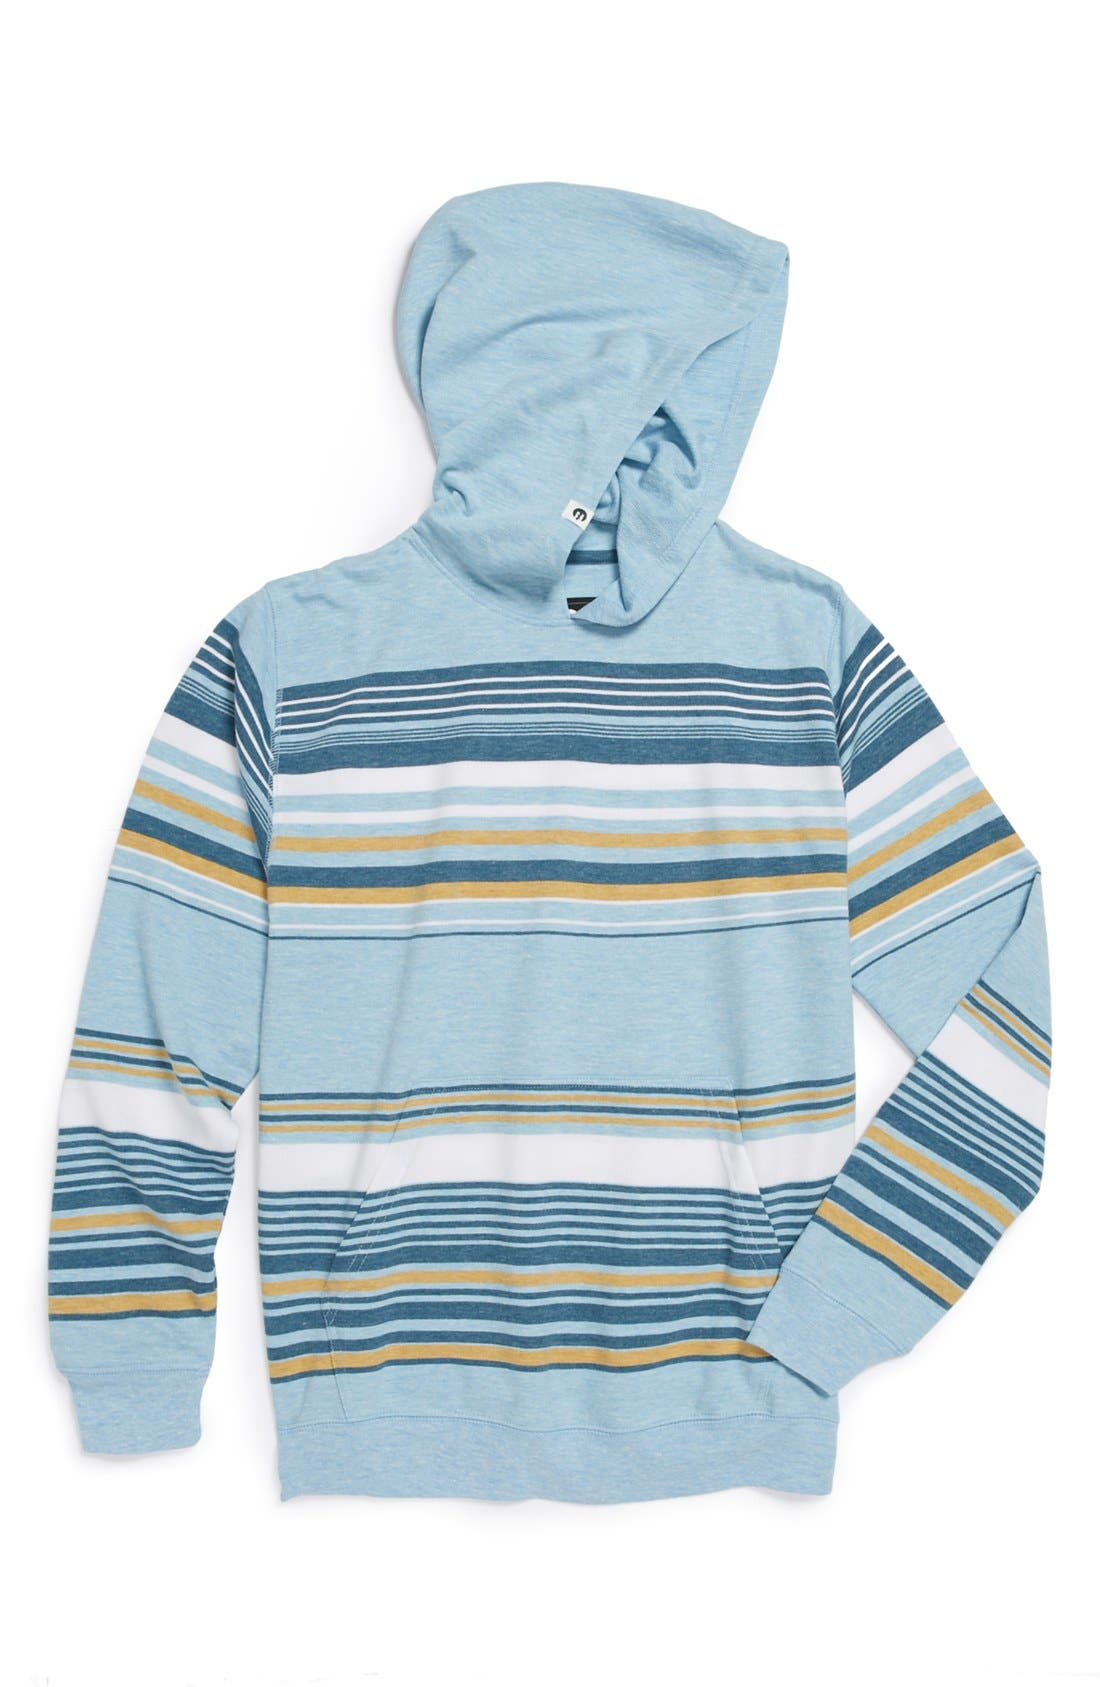 Alternate Image 1 Selected - Billabong 'The Recipe' Hoodie (Big Boys)